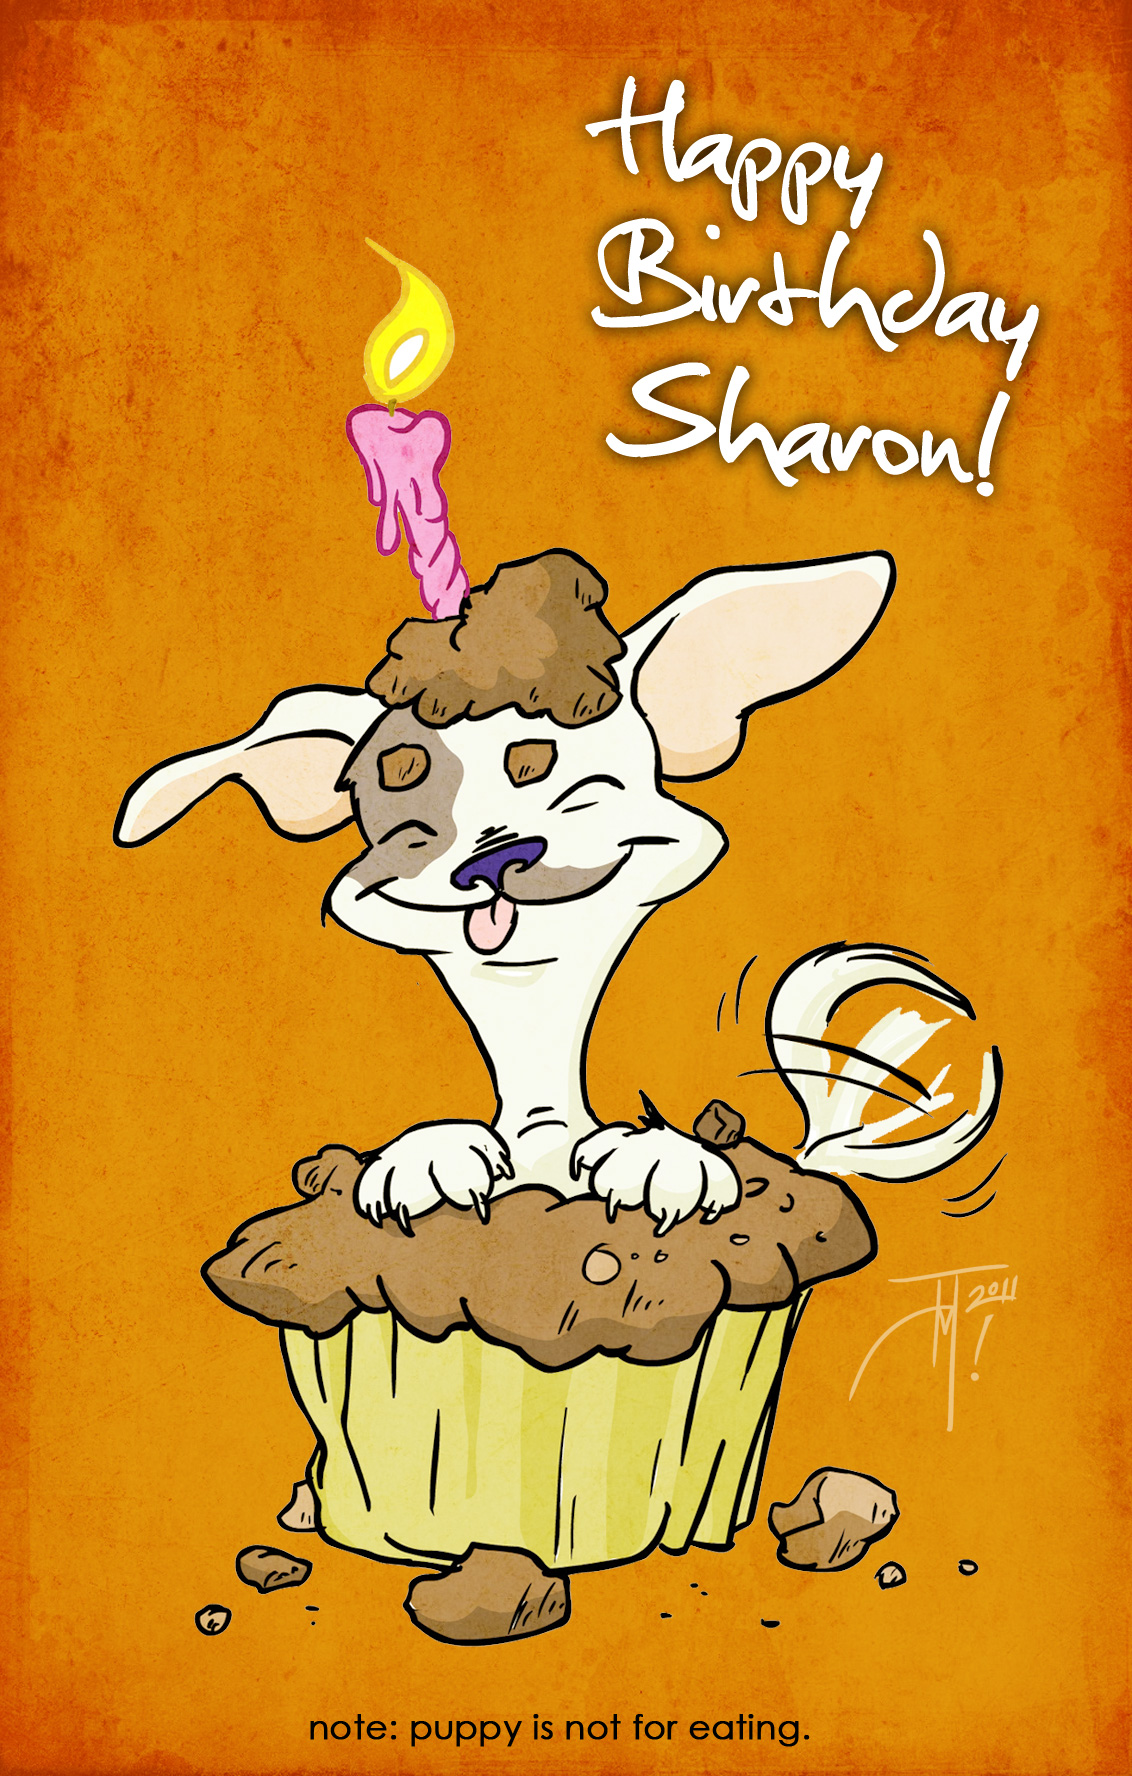 Happy Birthday Sharon!